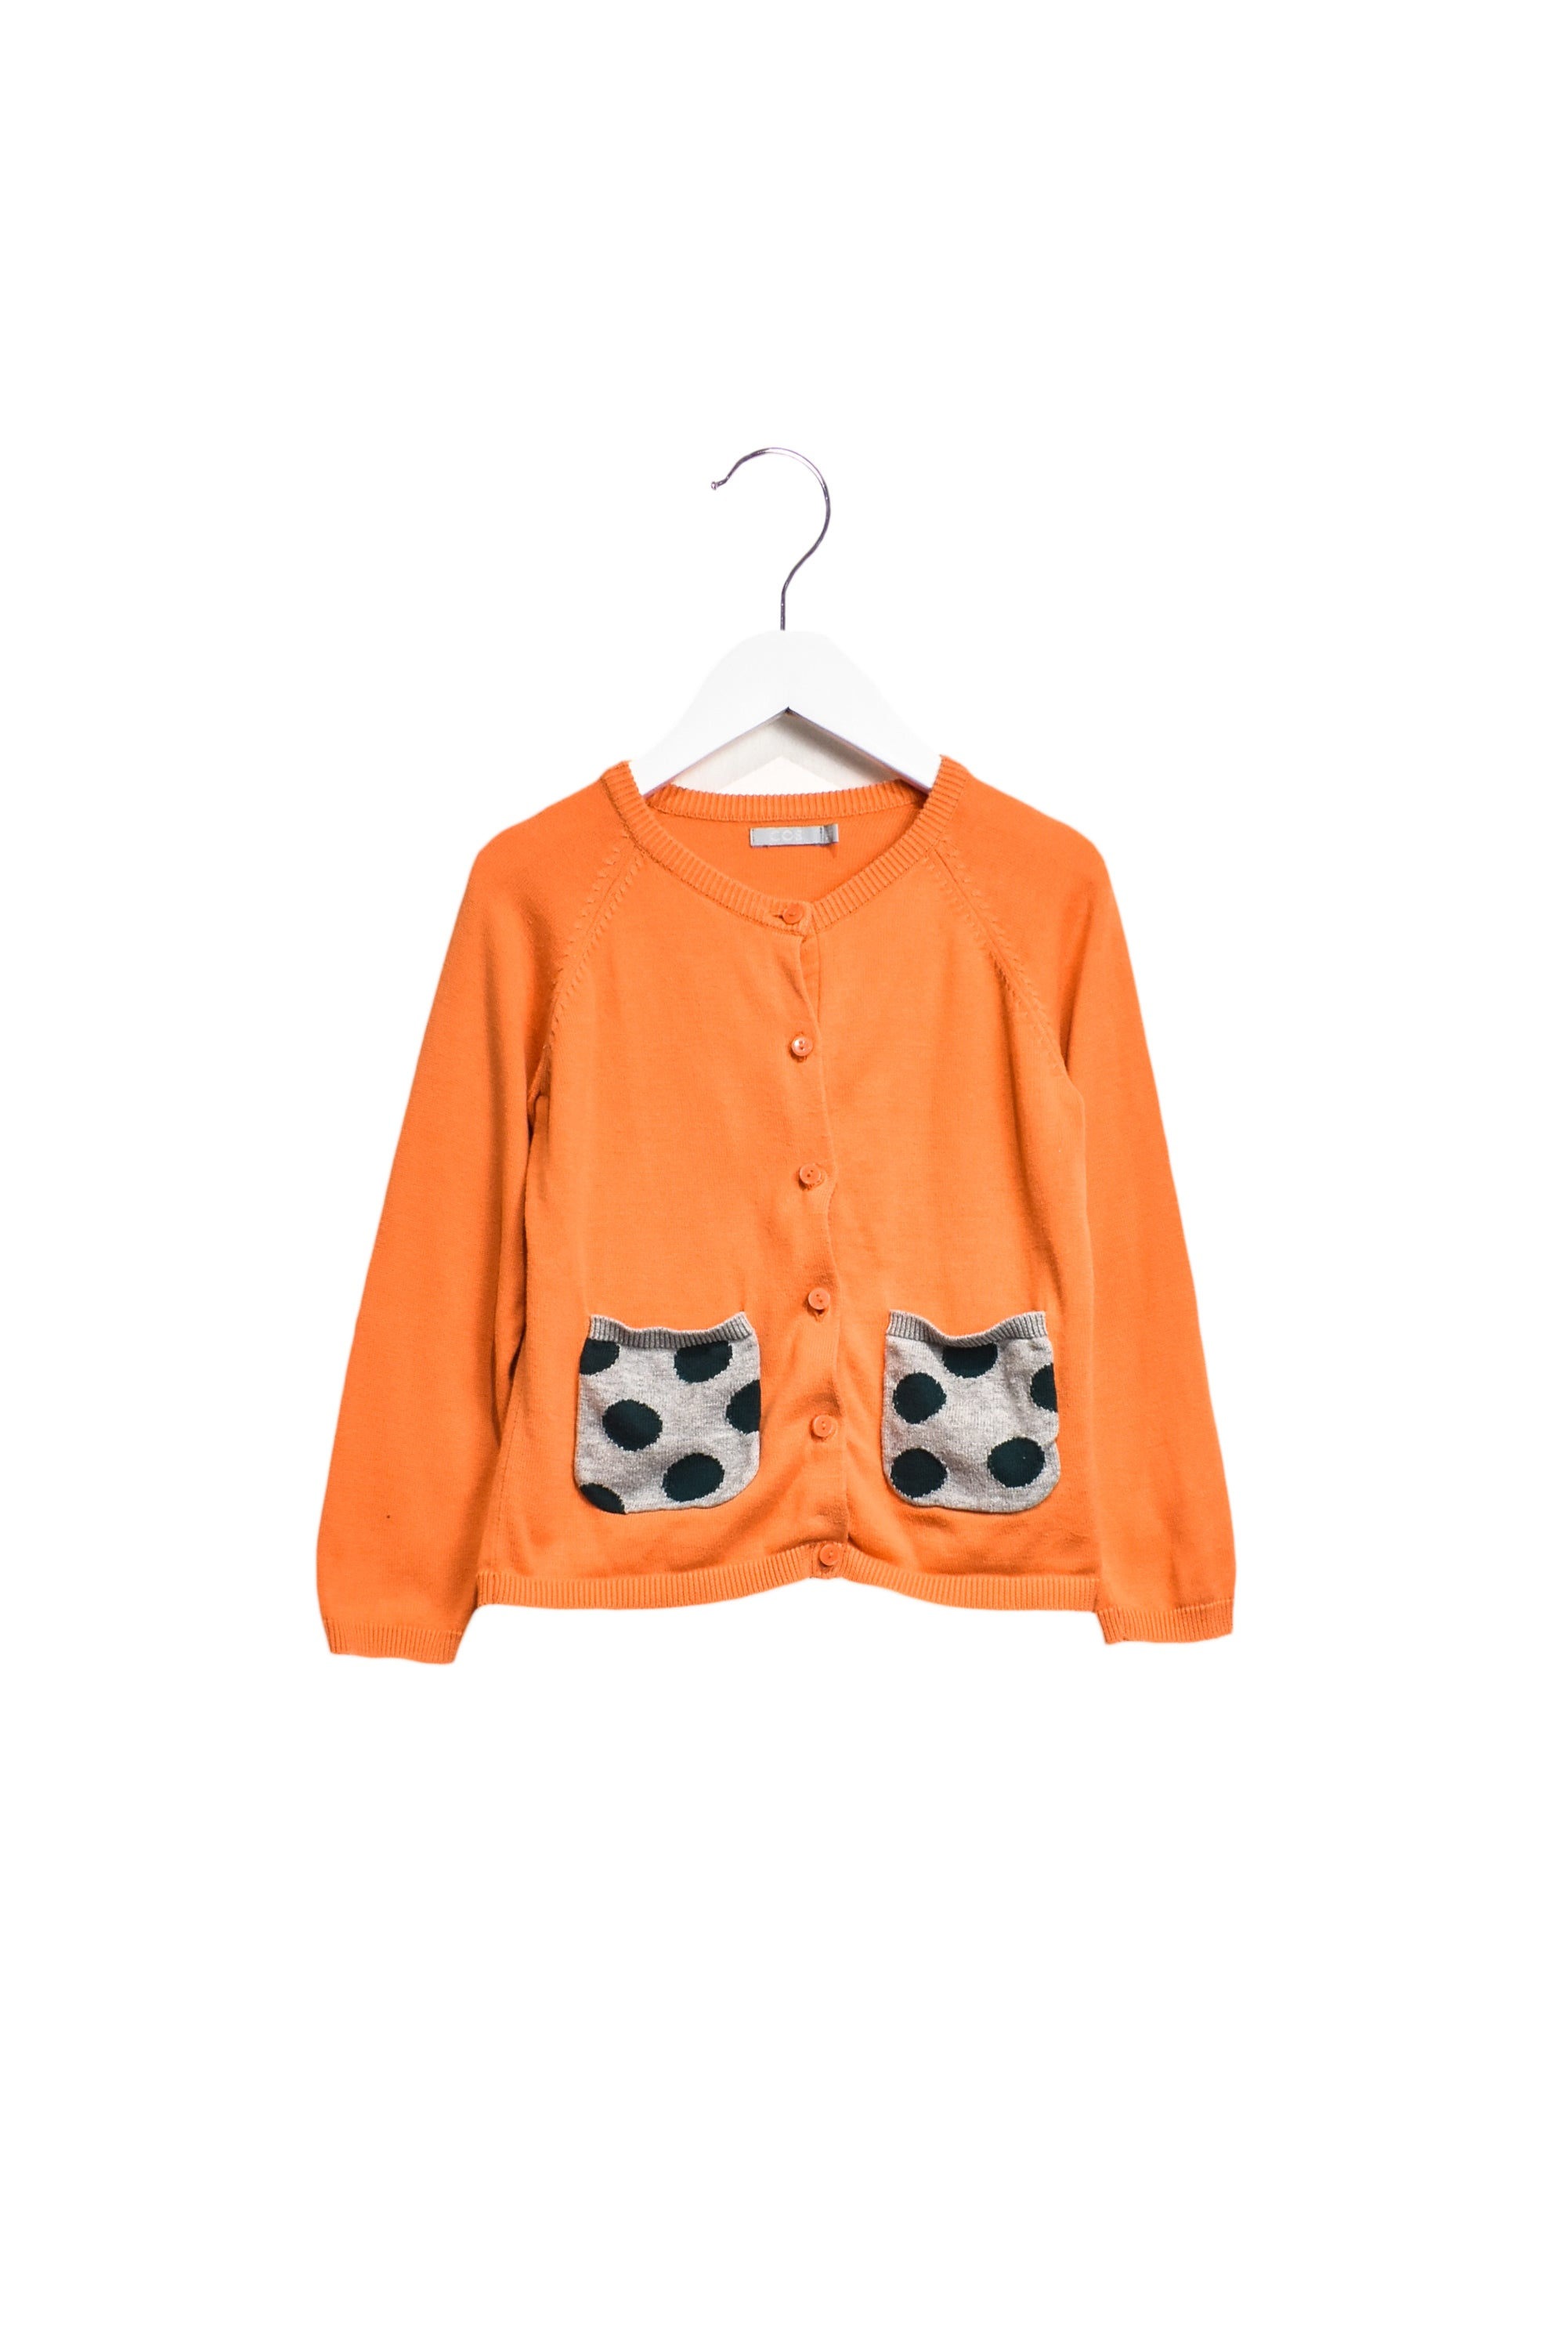 10023411 COS Kids~Cardigan 2-3T (98-104cm) at Retykle